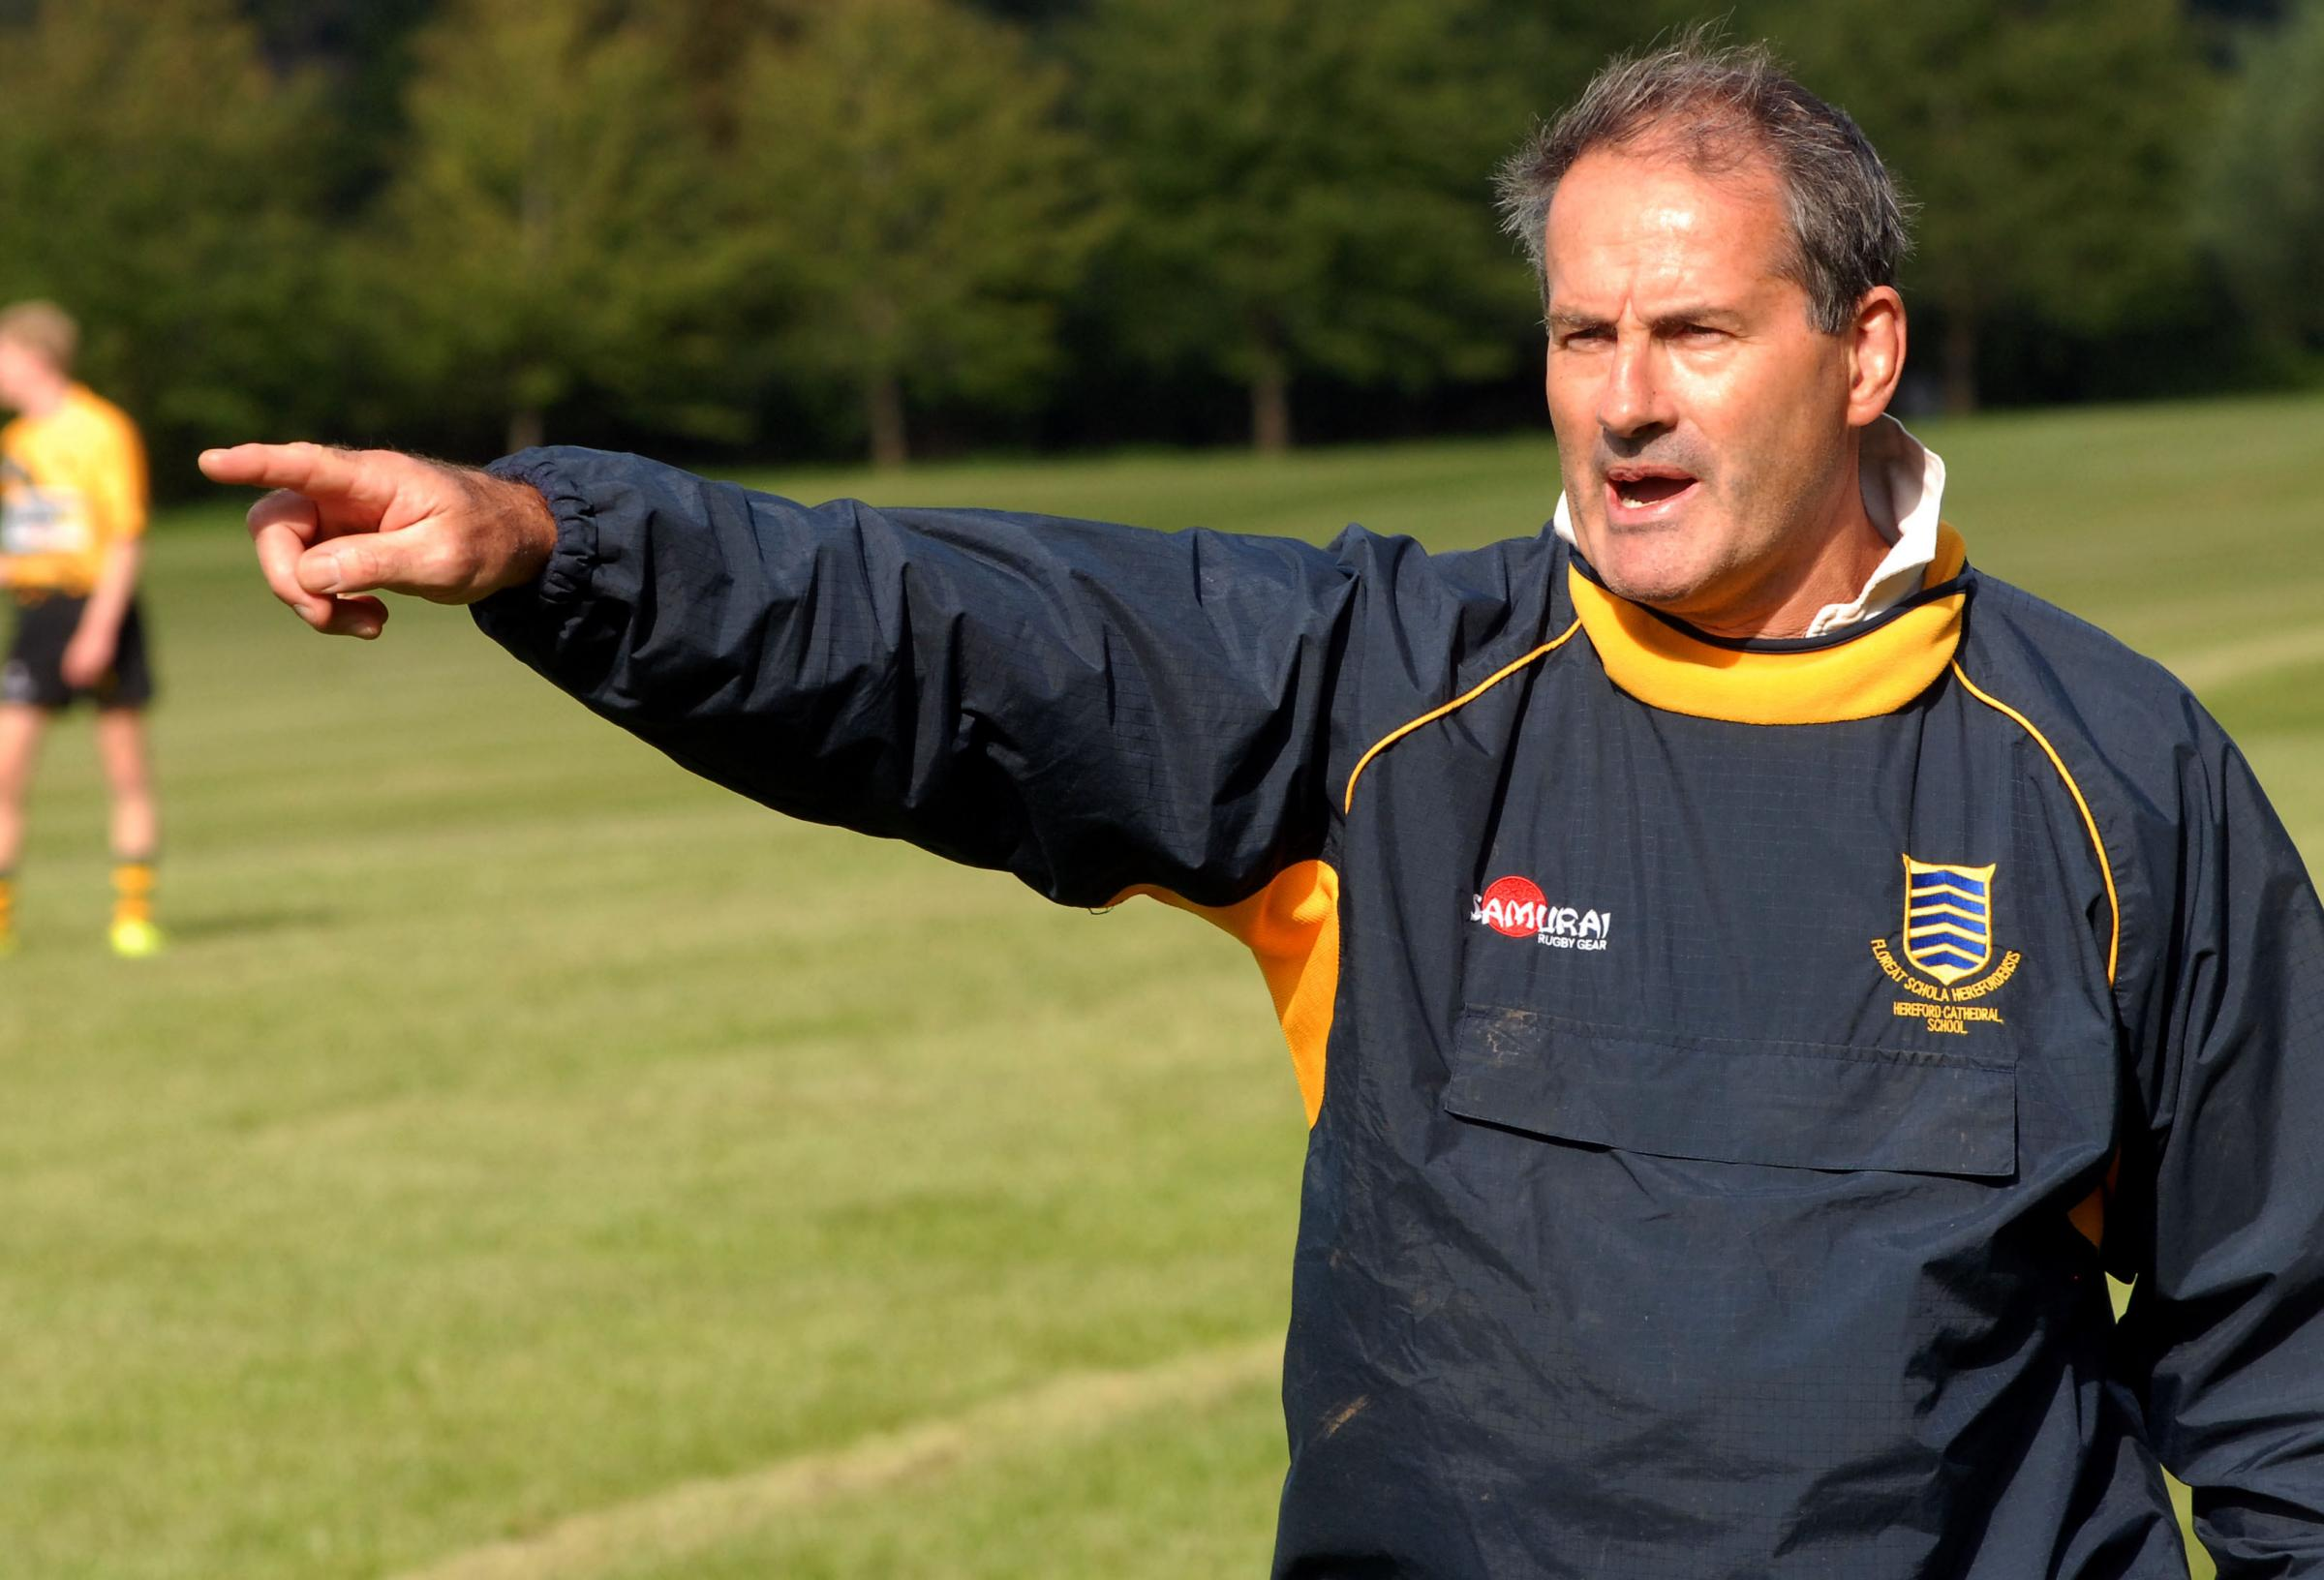 Tenbury RFC head coach Andy Black